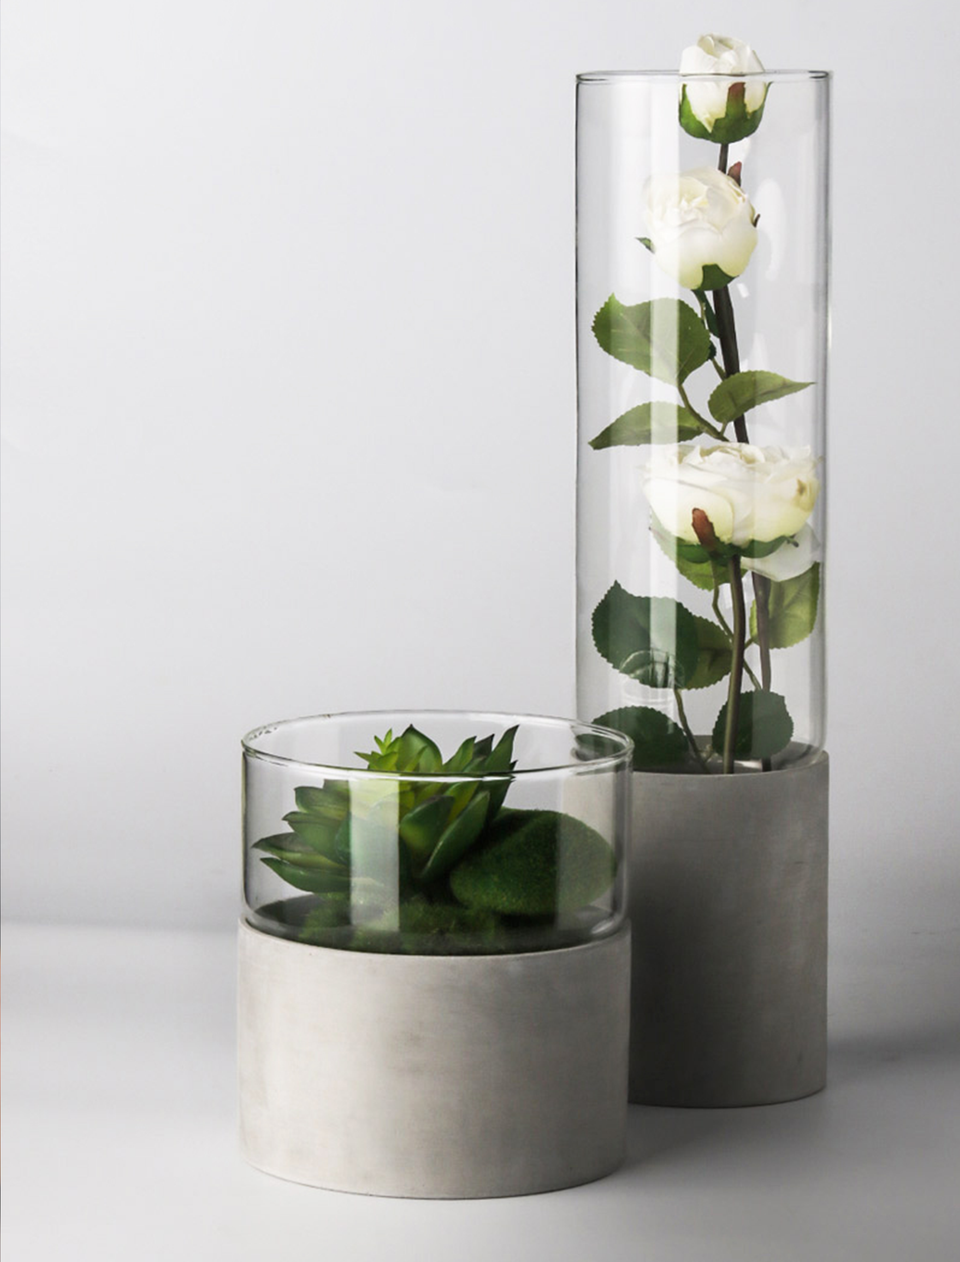 Best Seller: Modern Two-Tone Concrete and Glass Vase